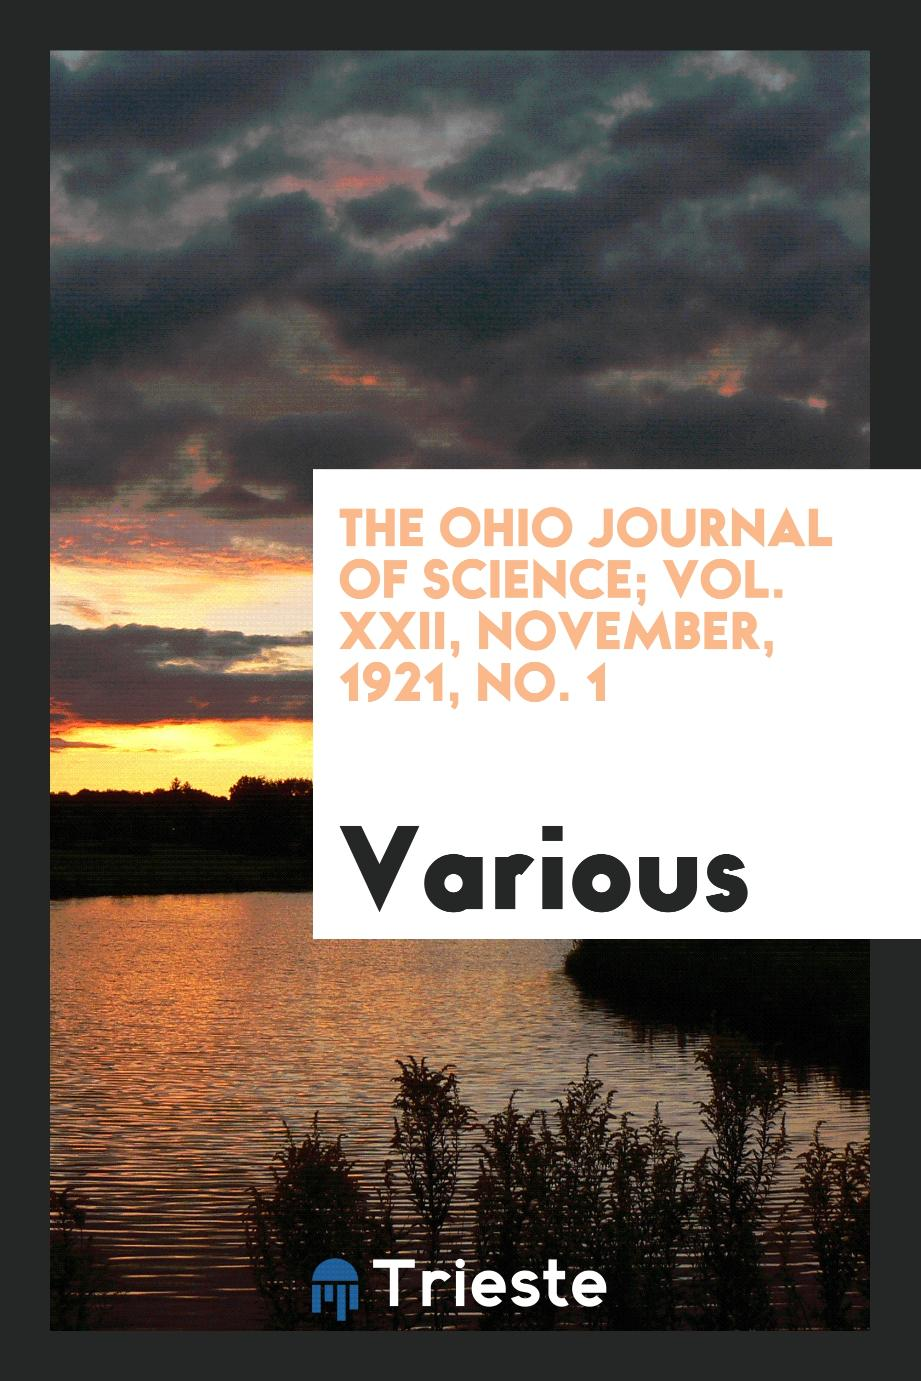 The Ohio Journal of Science; Vol. XXII, November, 1921, No. 1